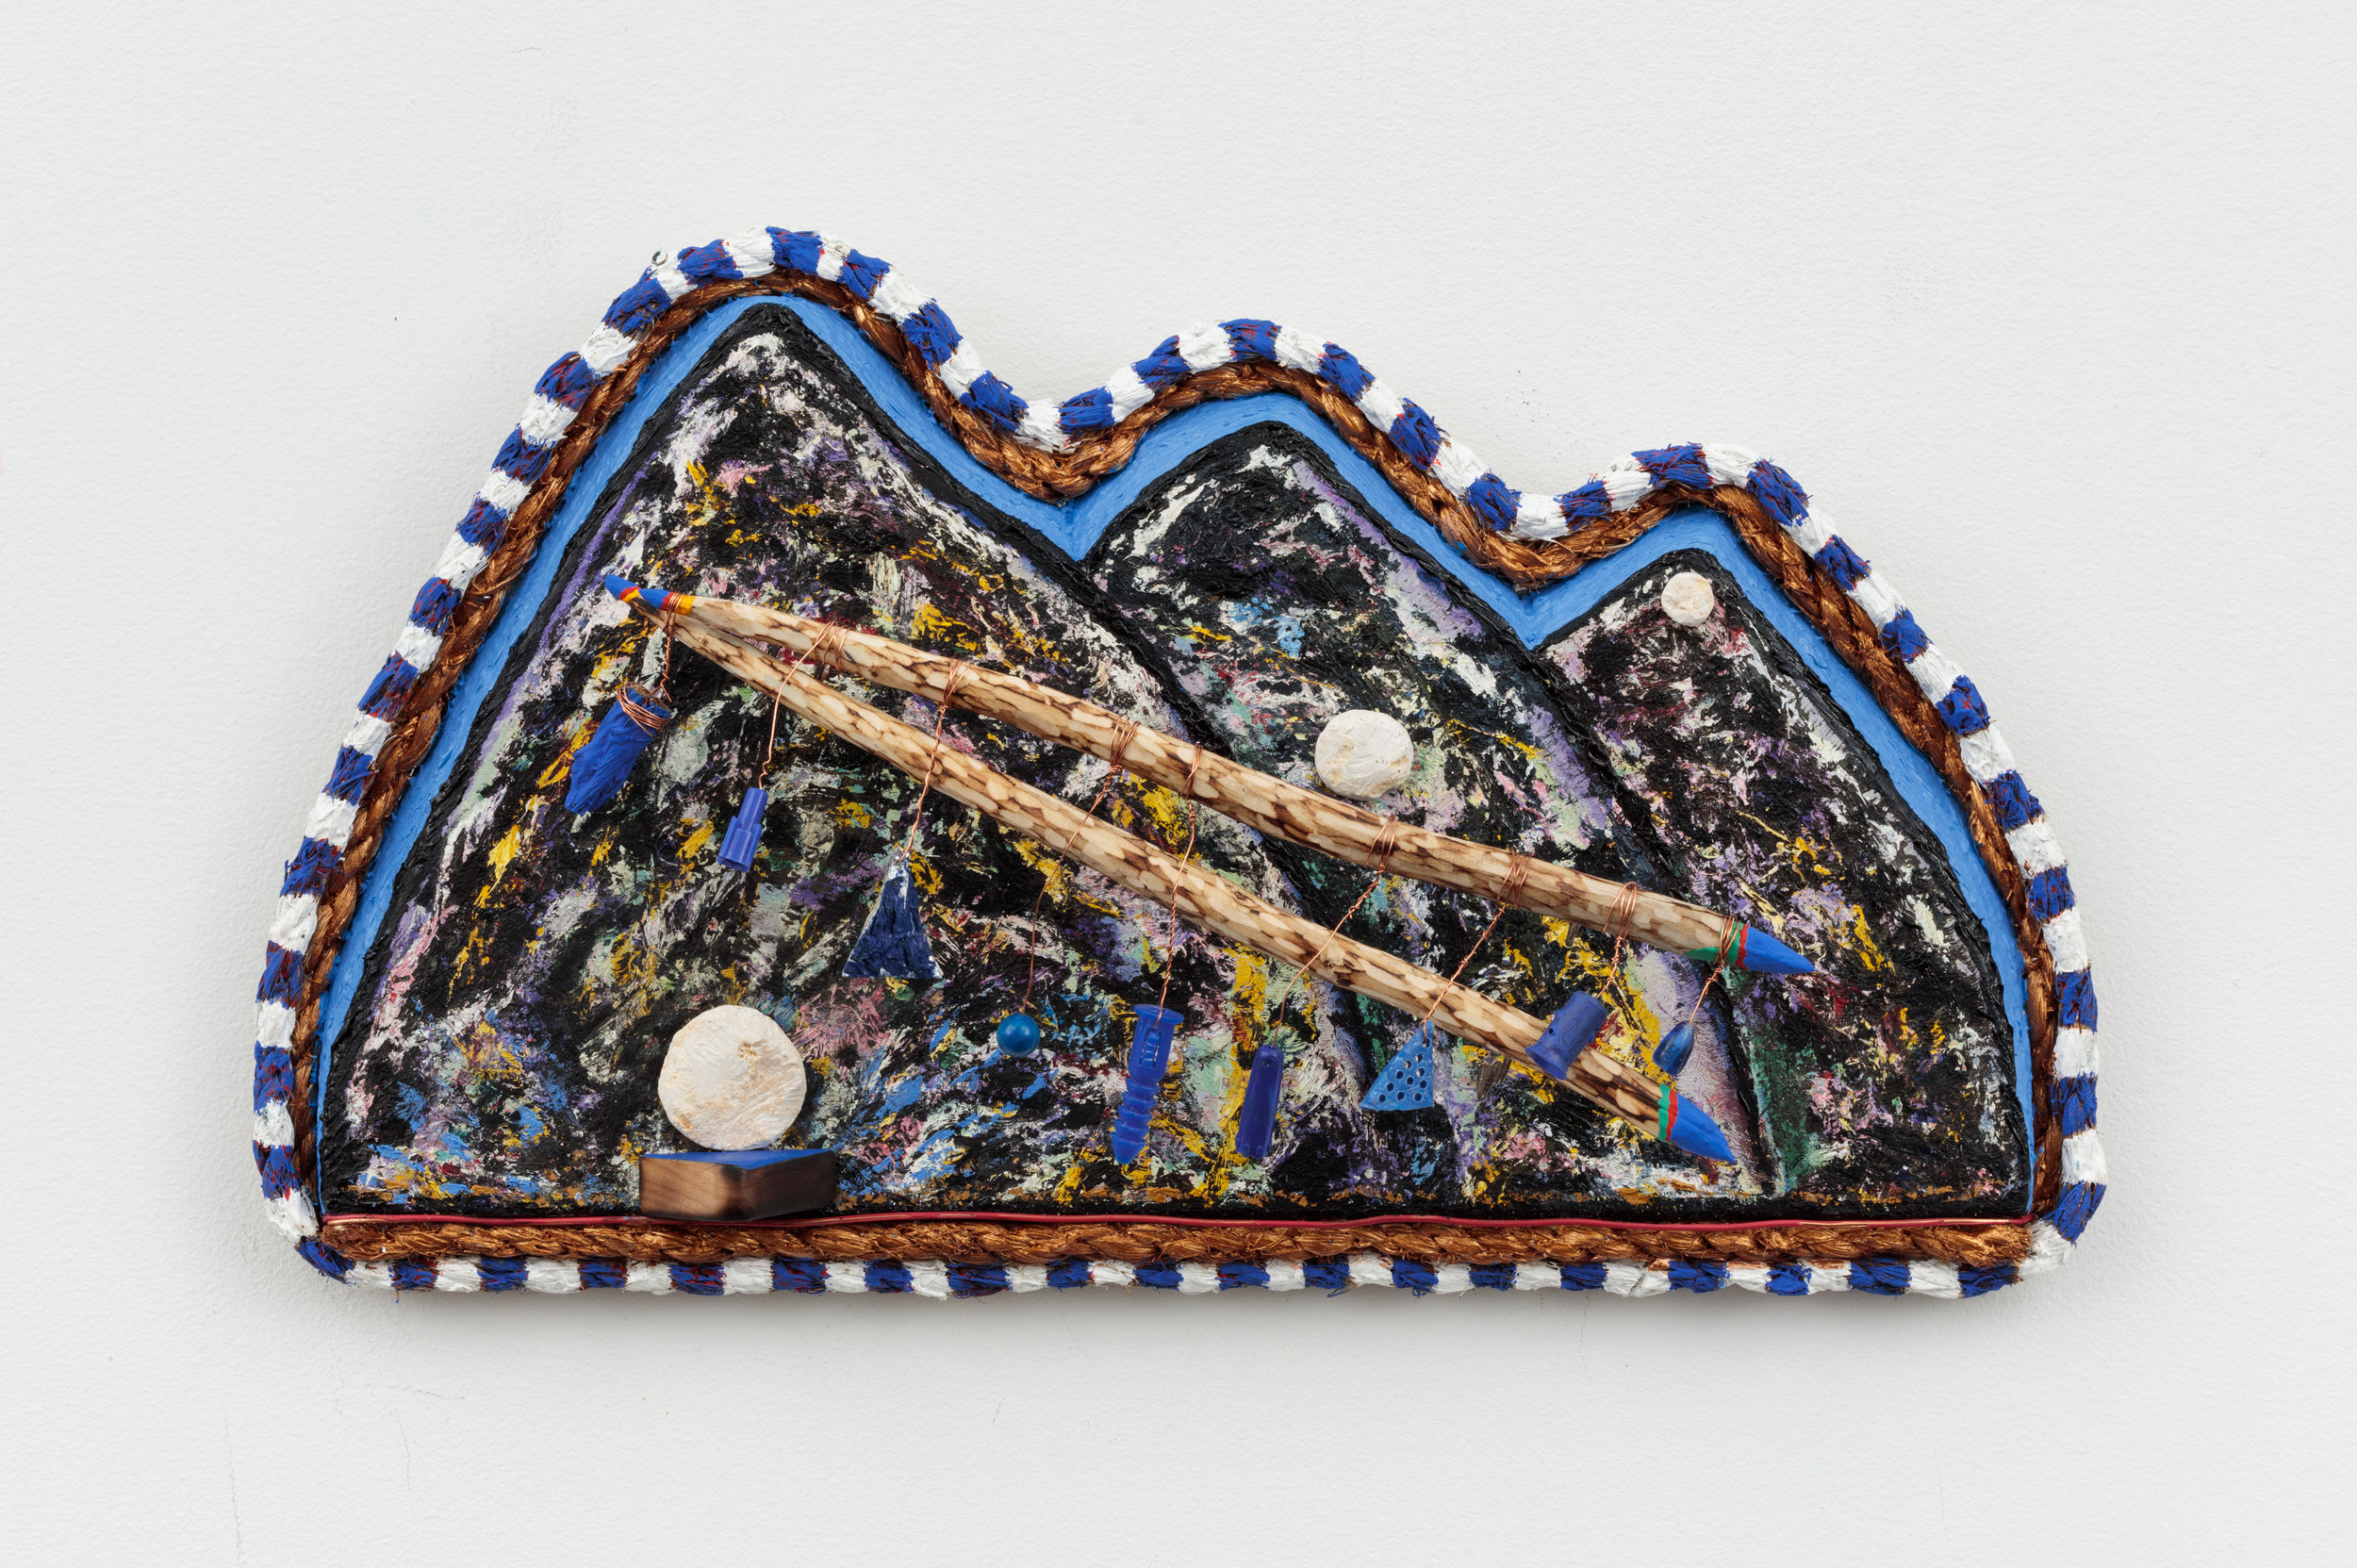 Cielito Lindo , 2018  / Oil, Flashe, wood, rope, nails, copper wire, limestone and found materials on wood.